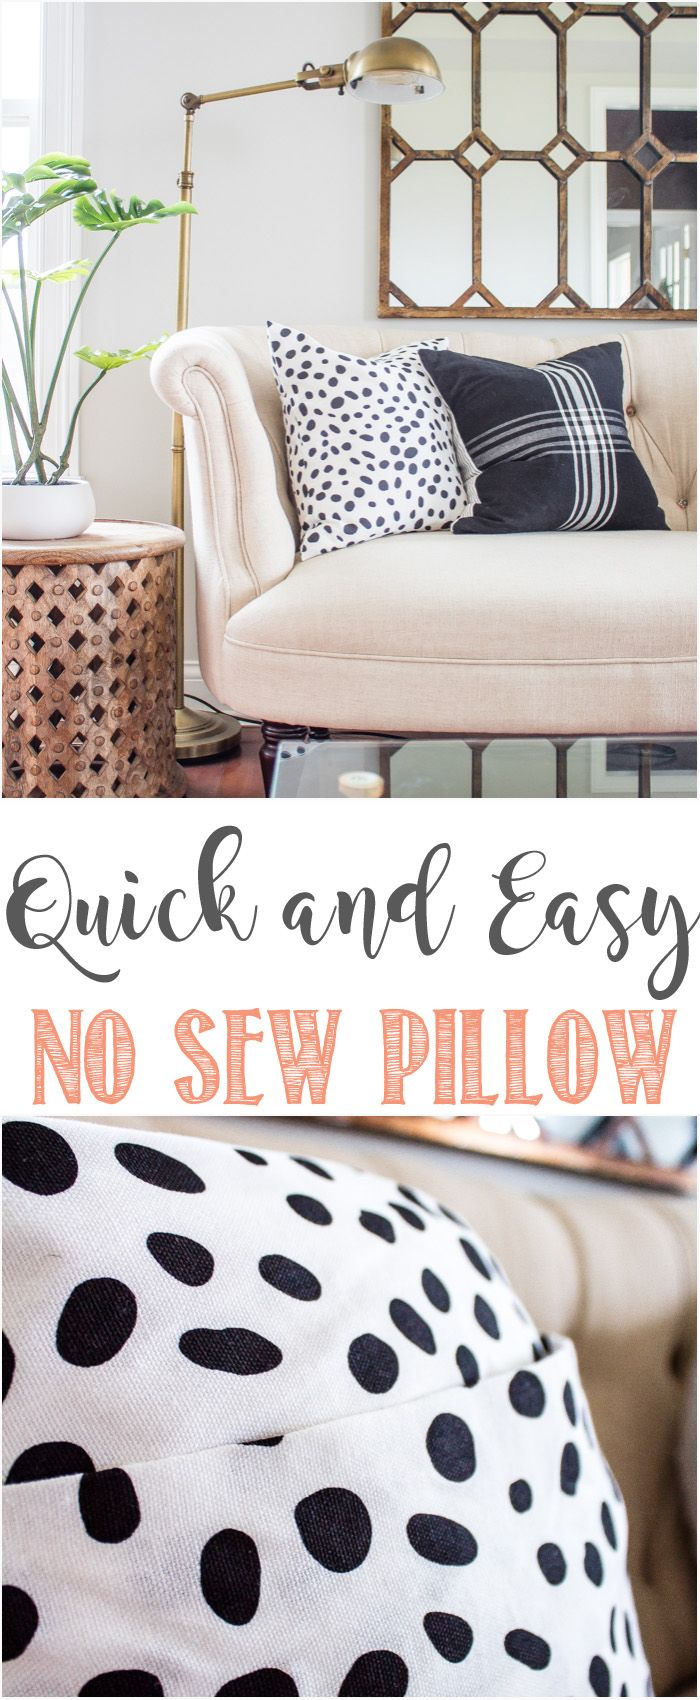 No Sew Pillow Cover. Quick And Easy No Sew Pillow Using Fabric Glue